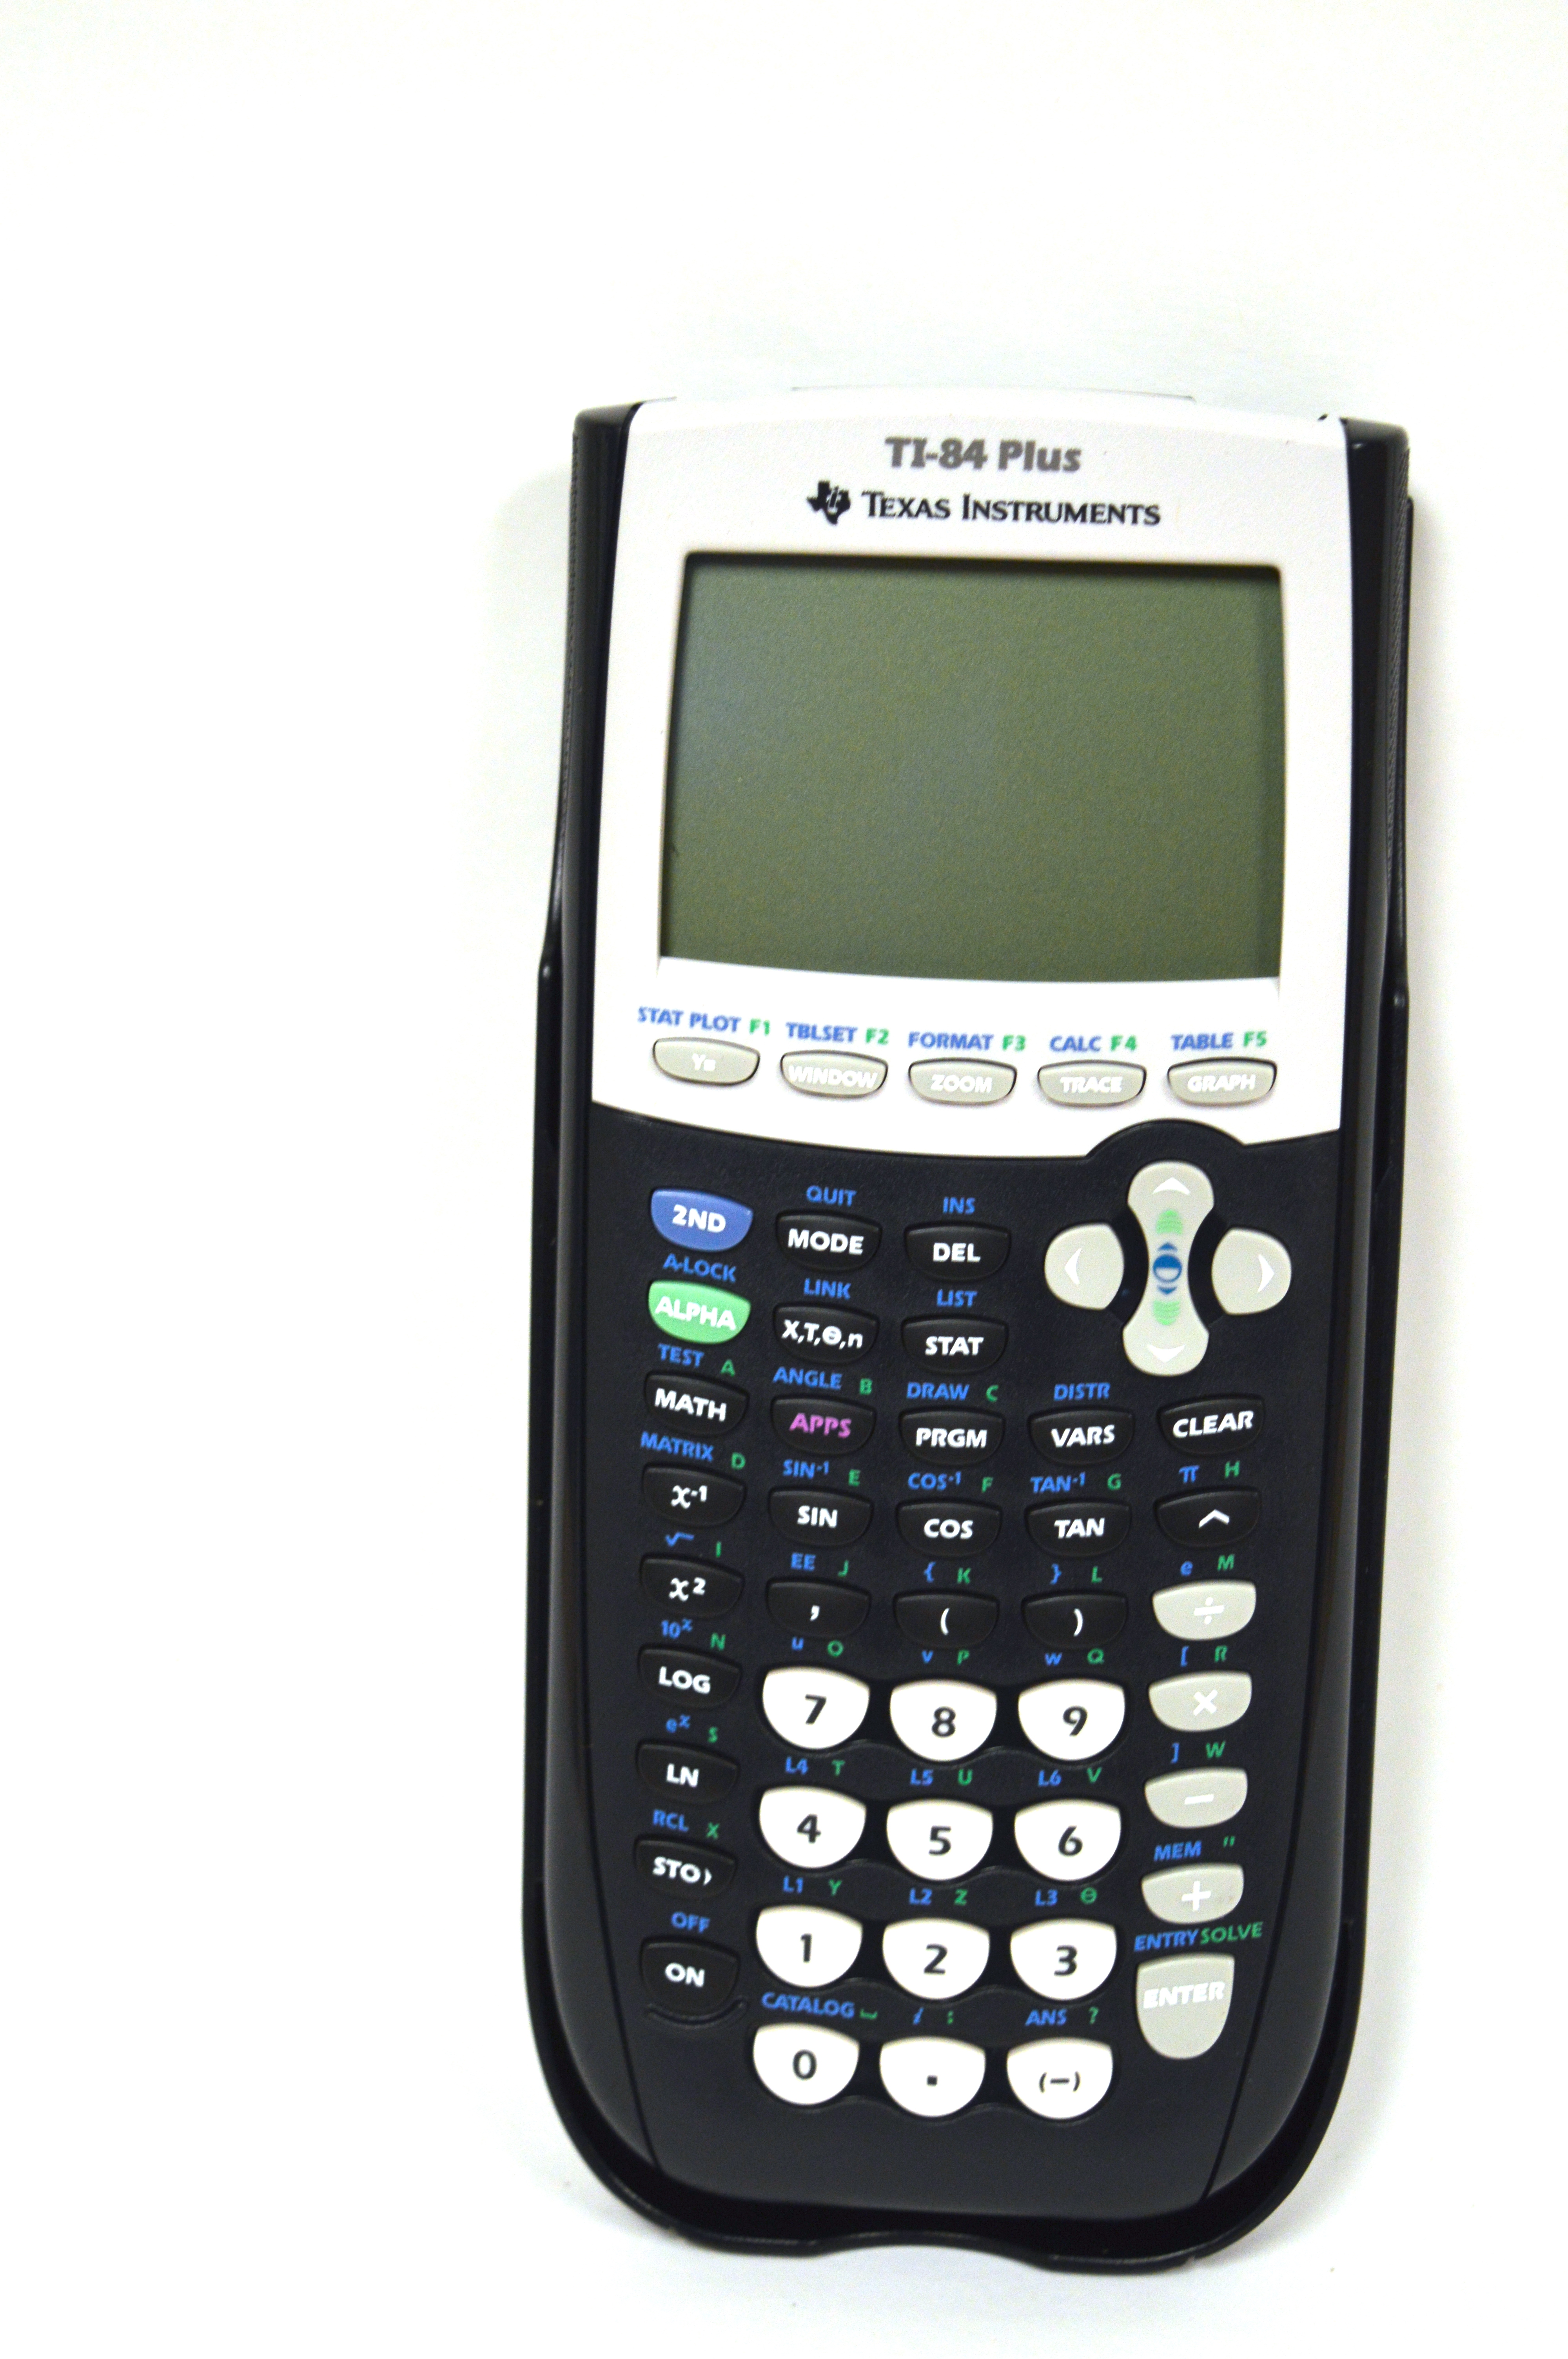 Texas Instruments TI-84 Plus Graphing Calculator with 30V cord, USB